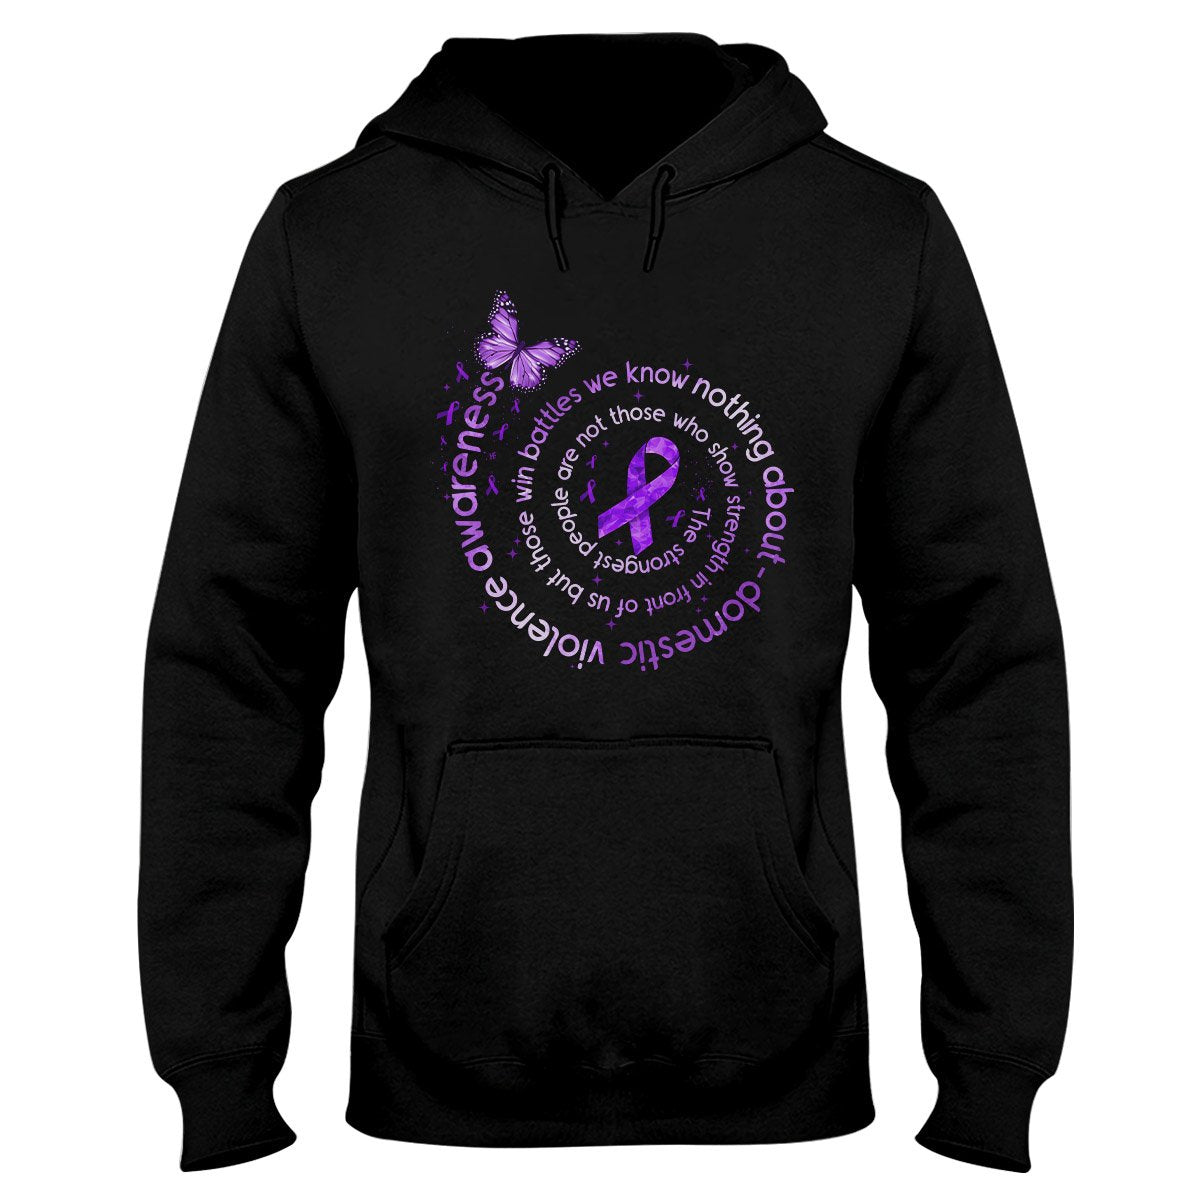 The Strongest People Domestic Violence Awareness Hoodie